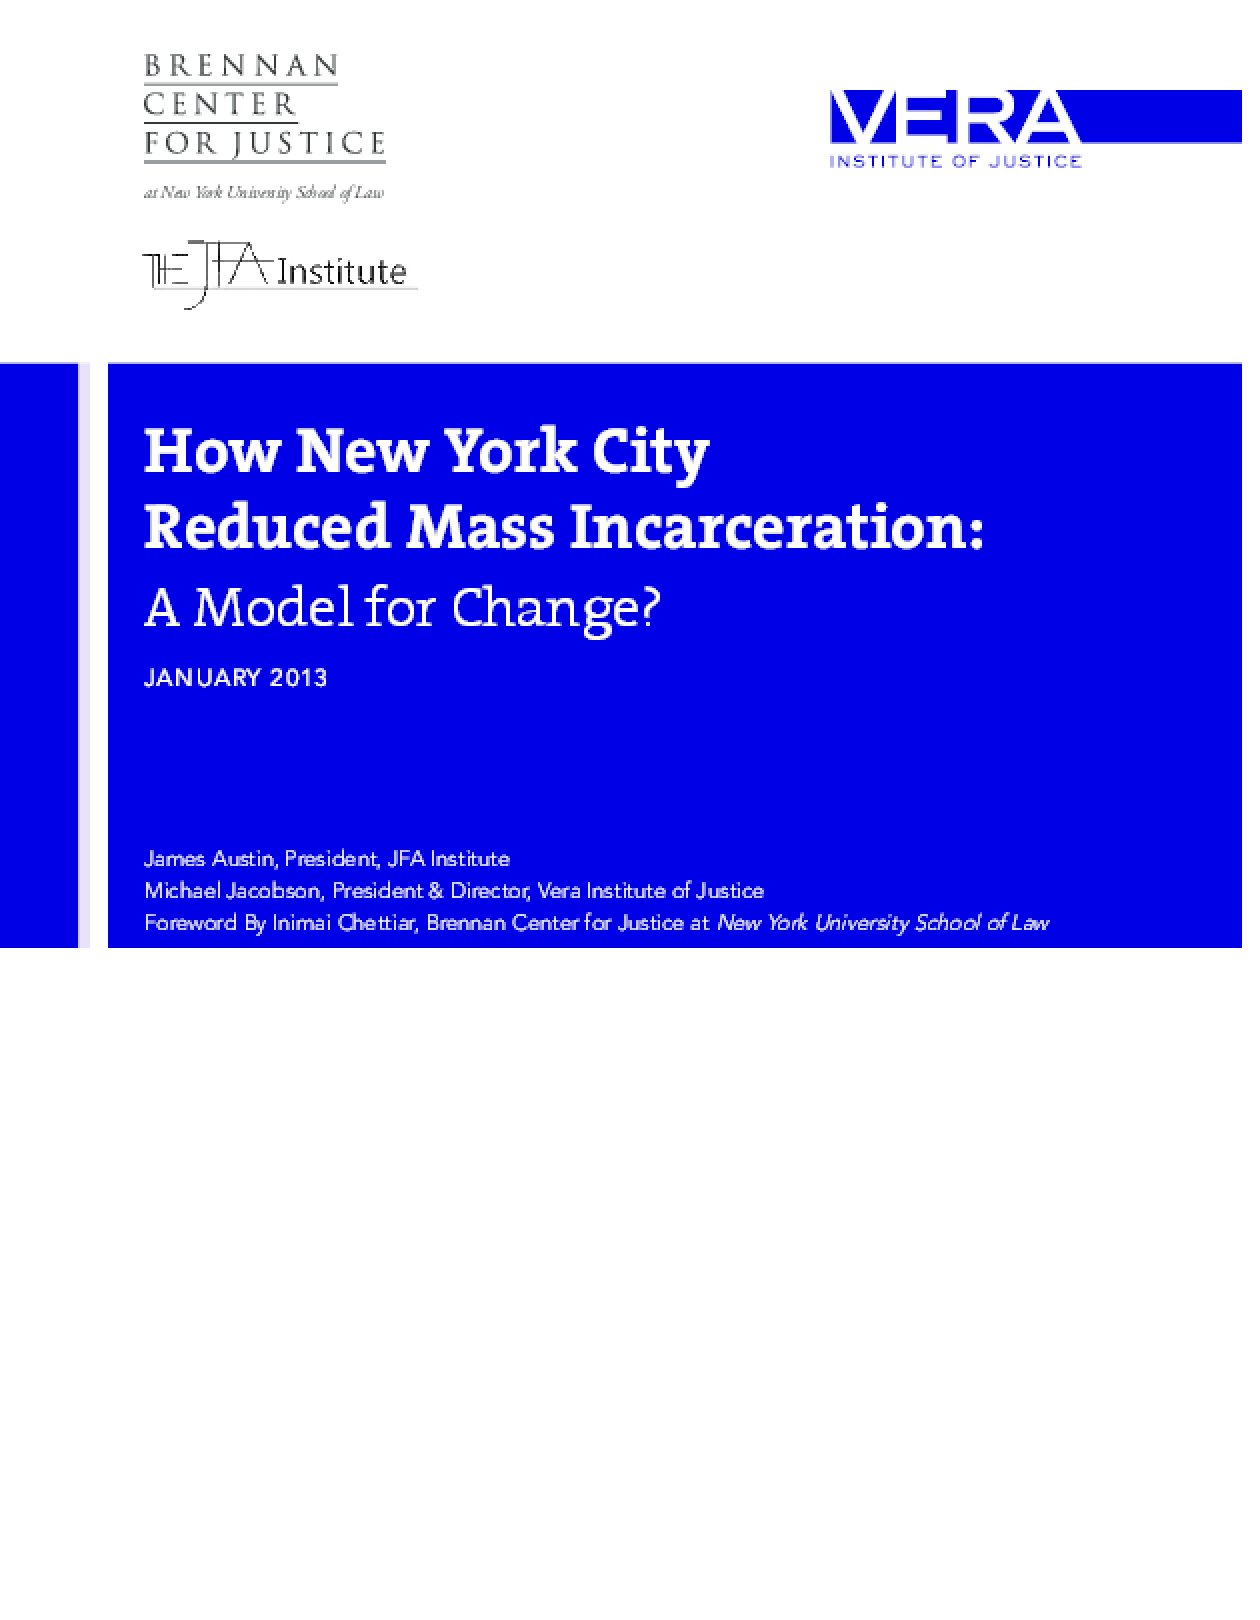 How New York City Reduced Mass Incarceration: A Model for Change?